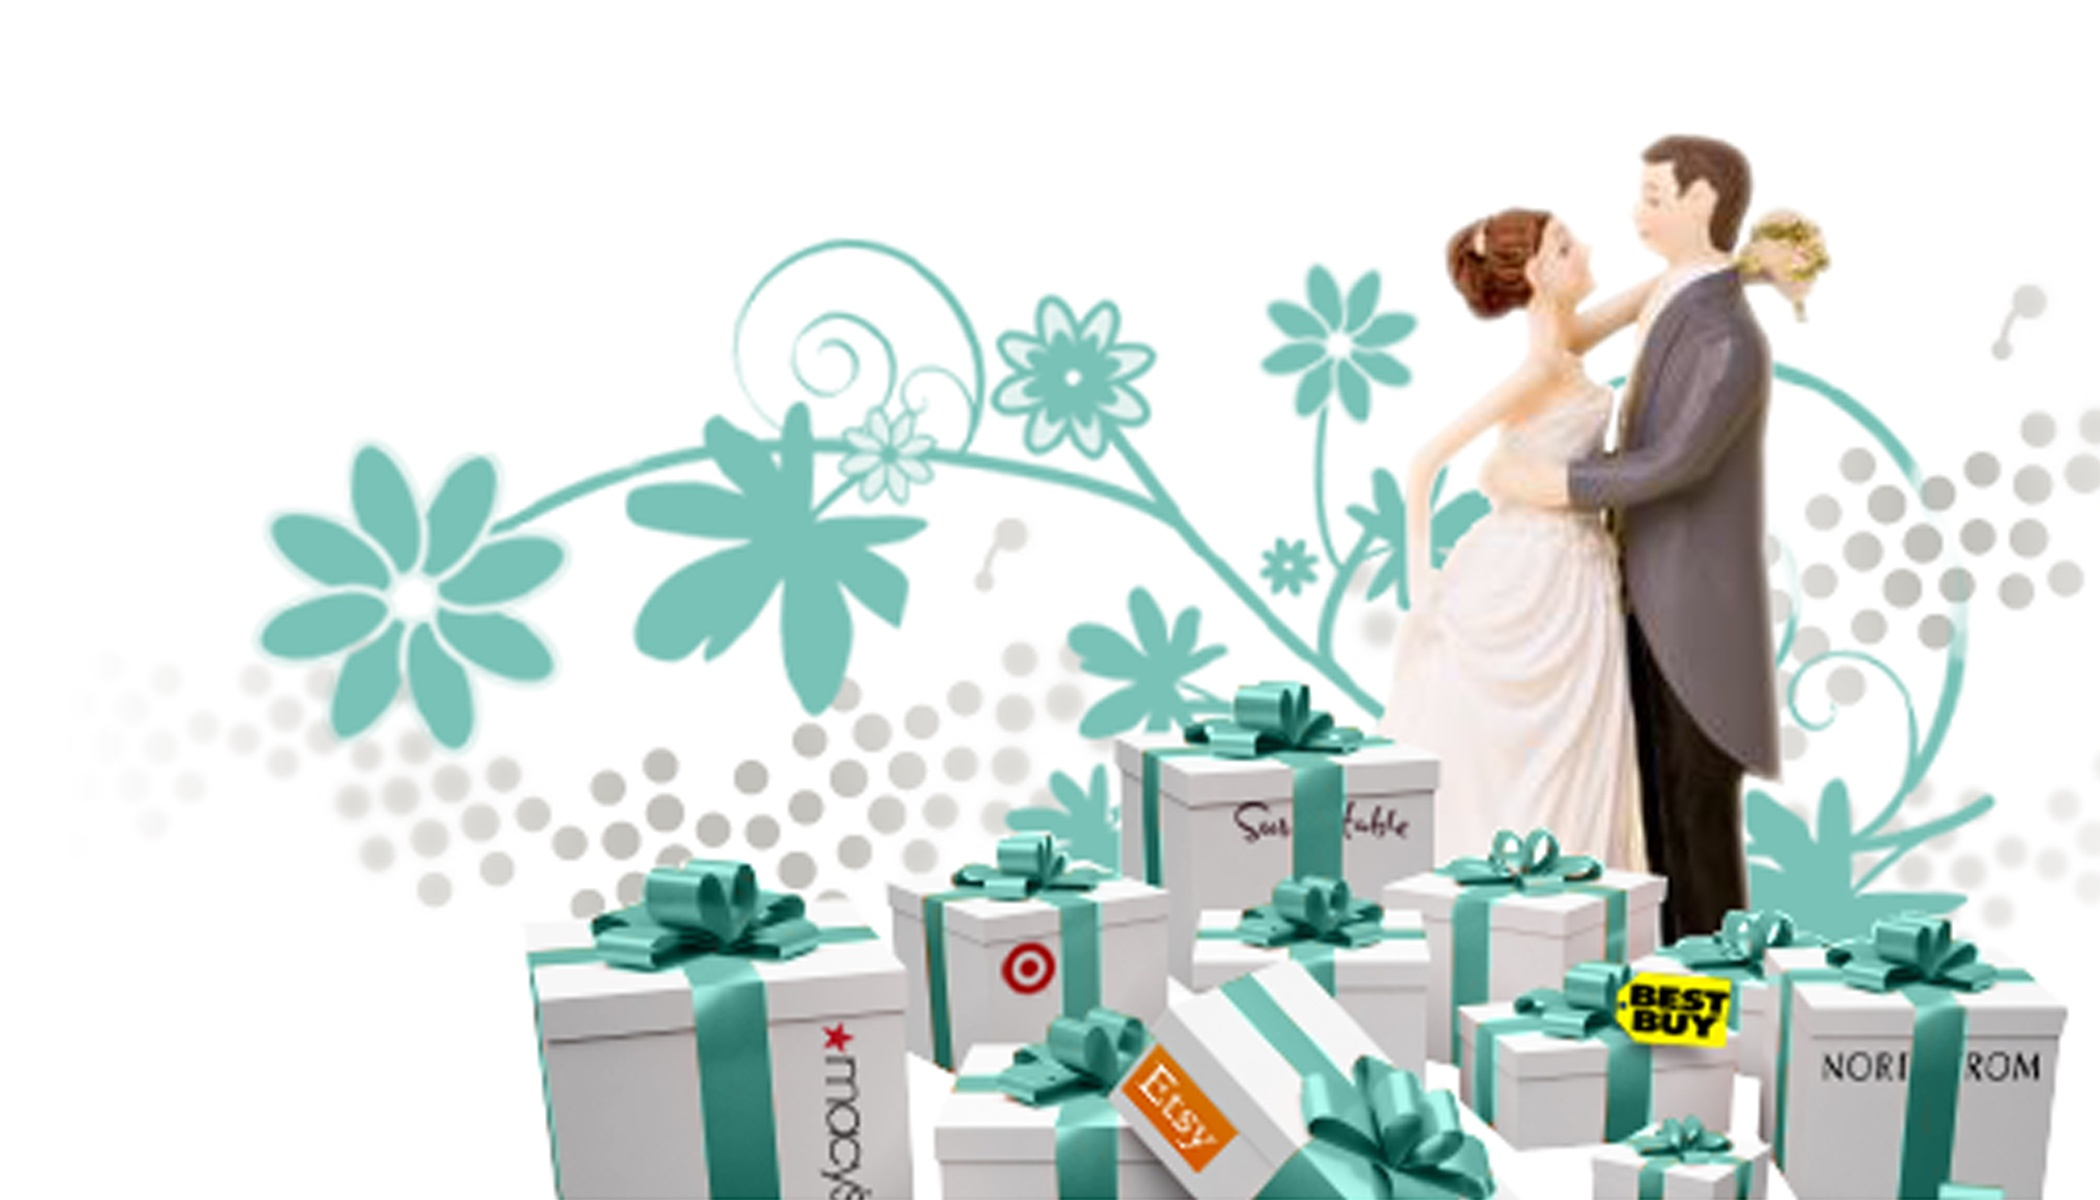 The Crucial Question Is Would You Be A Okay With Having Wedding Gift Registry Concept In India Read On To Know More